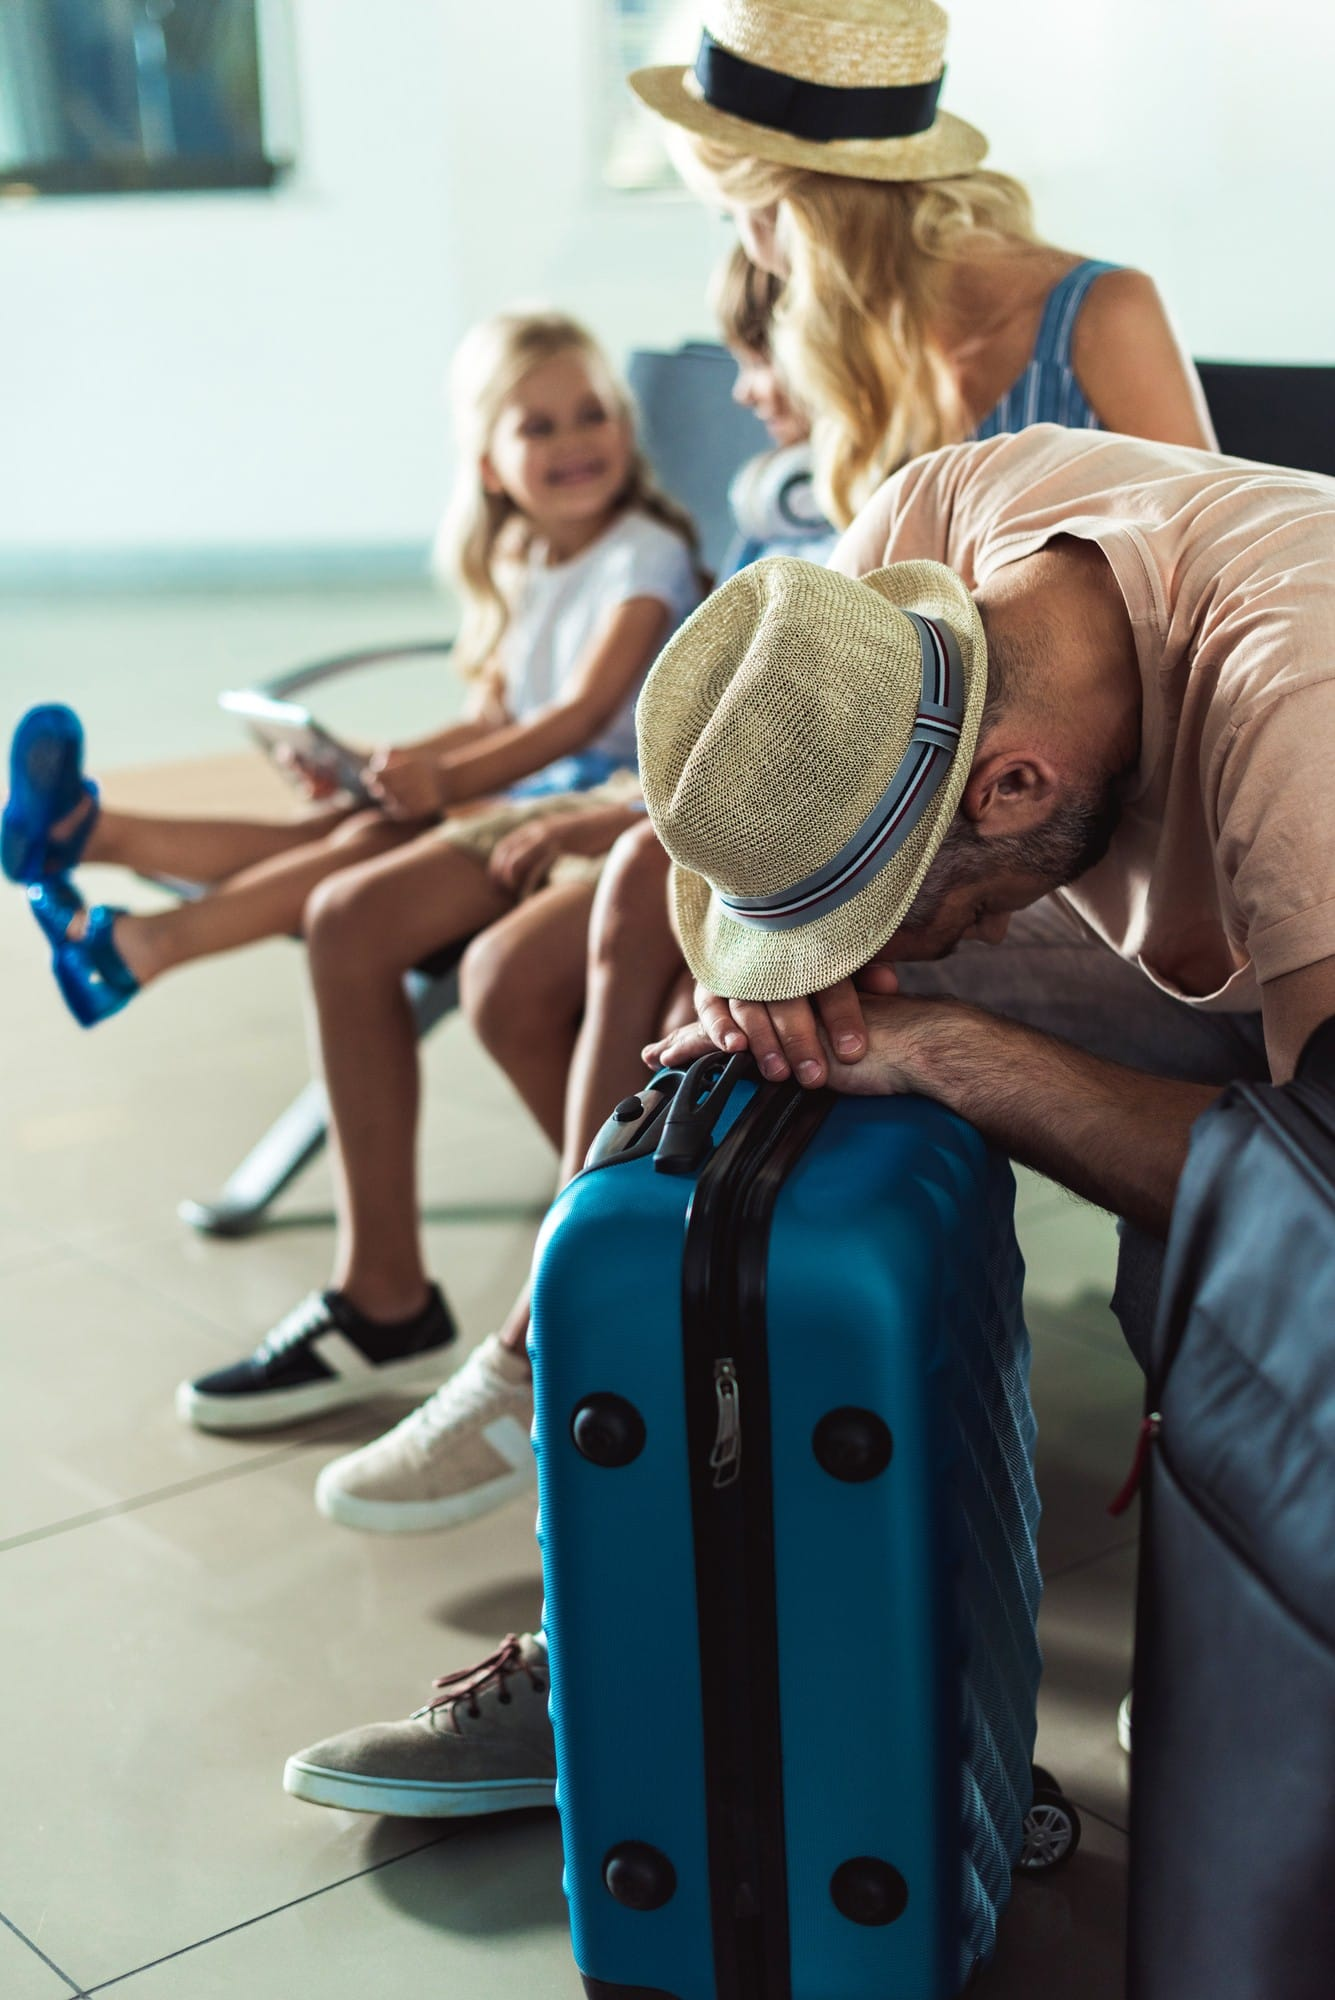 Don't despair if your flight is cancelled or delayed -- get compensated instead!